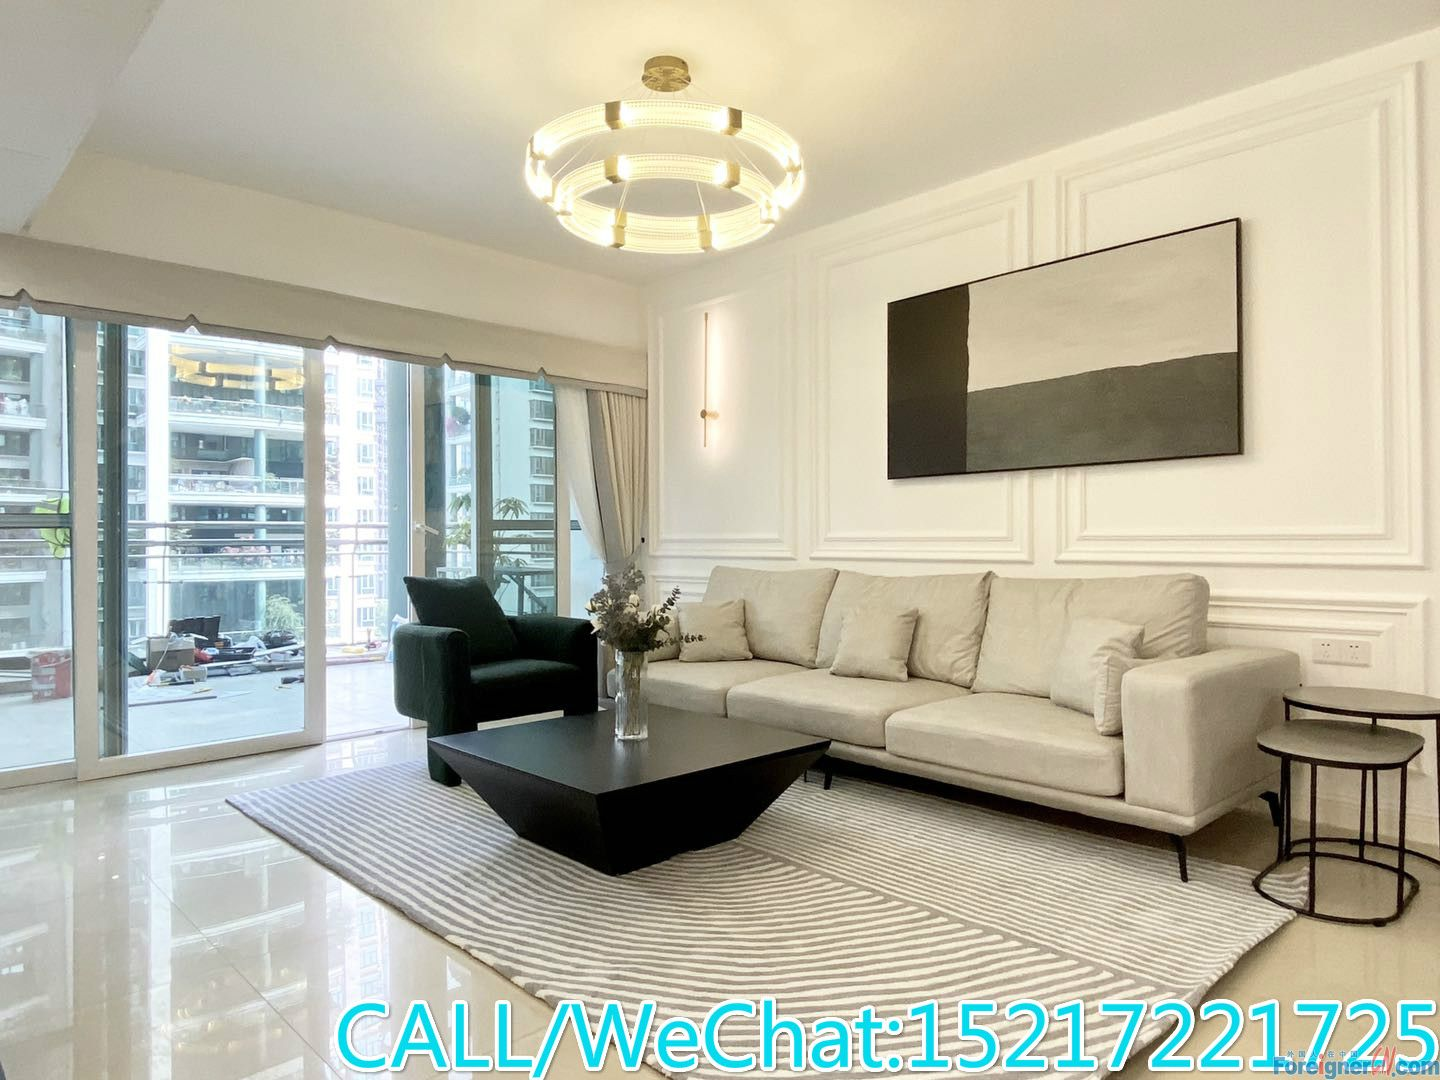 New decoration 3brs avaliable in large compound,Concise style,huge balcony,CBD AREA,convenient for ur life.